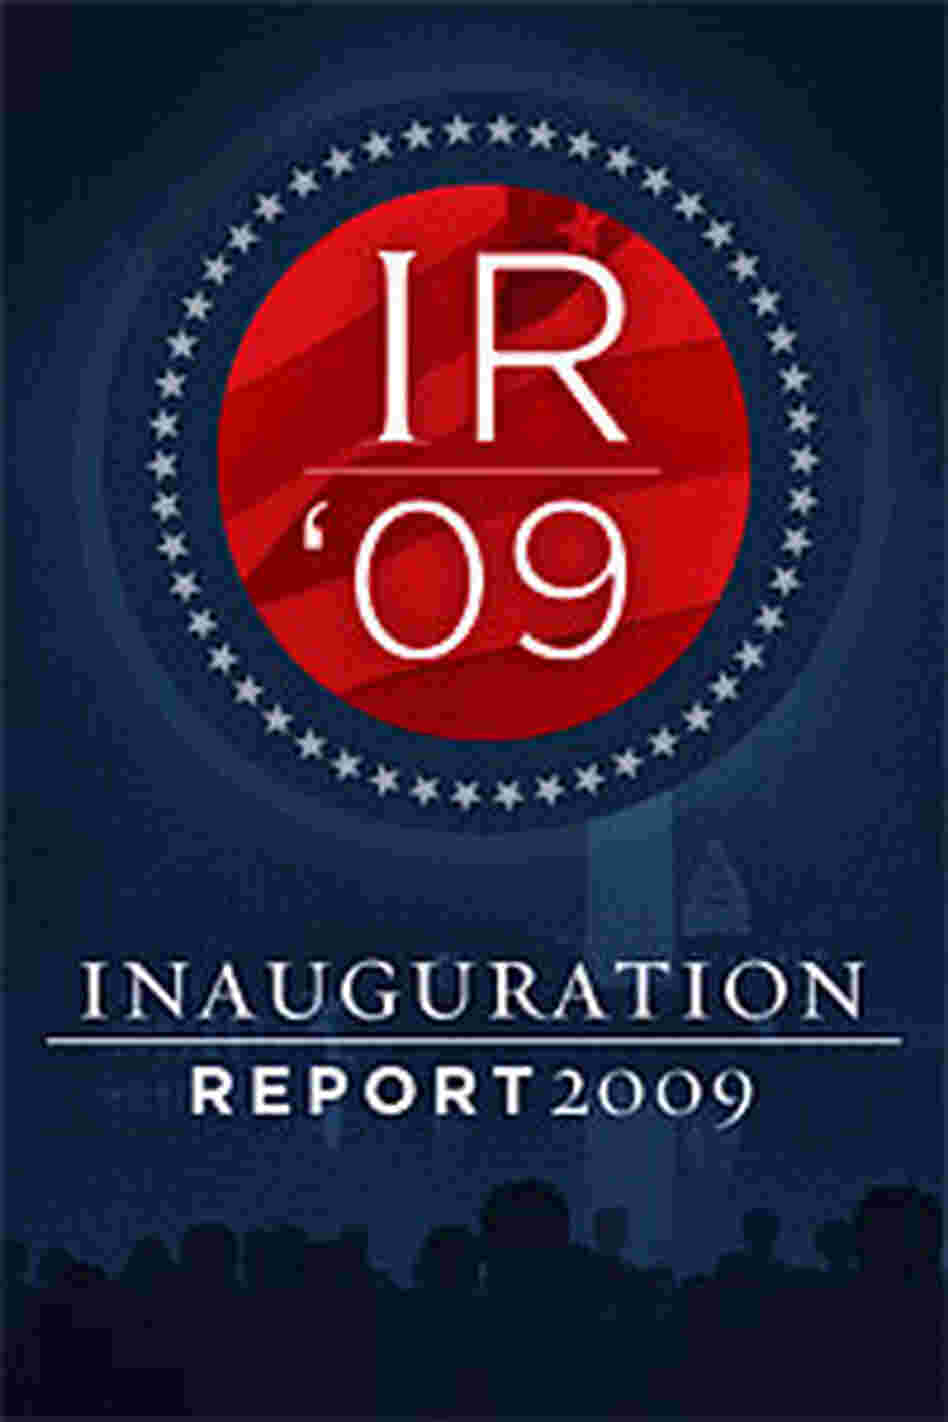 A draft of one of the logos we're considering for the Inauguration Report project.